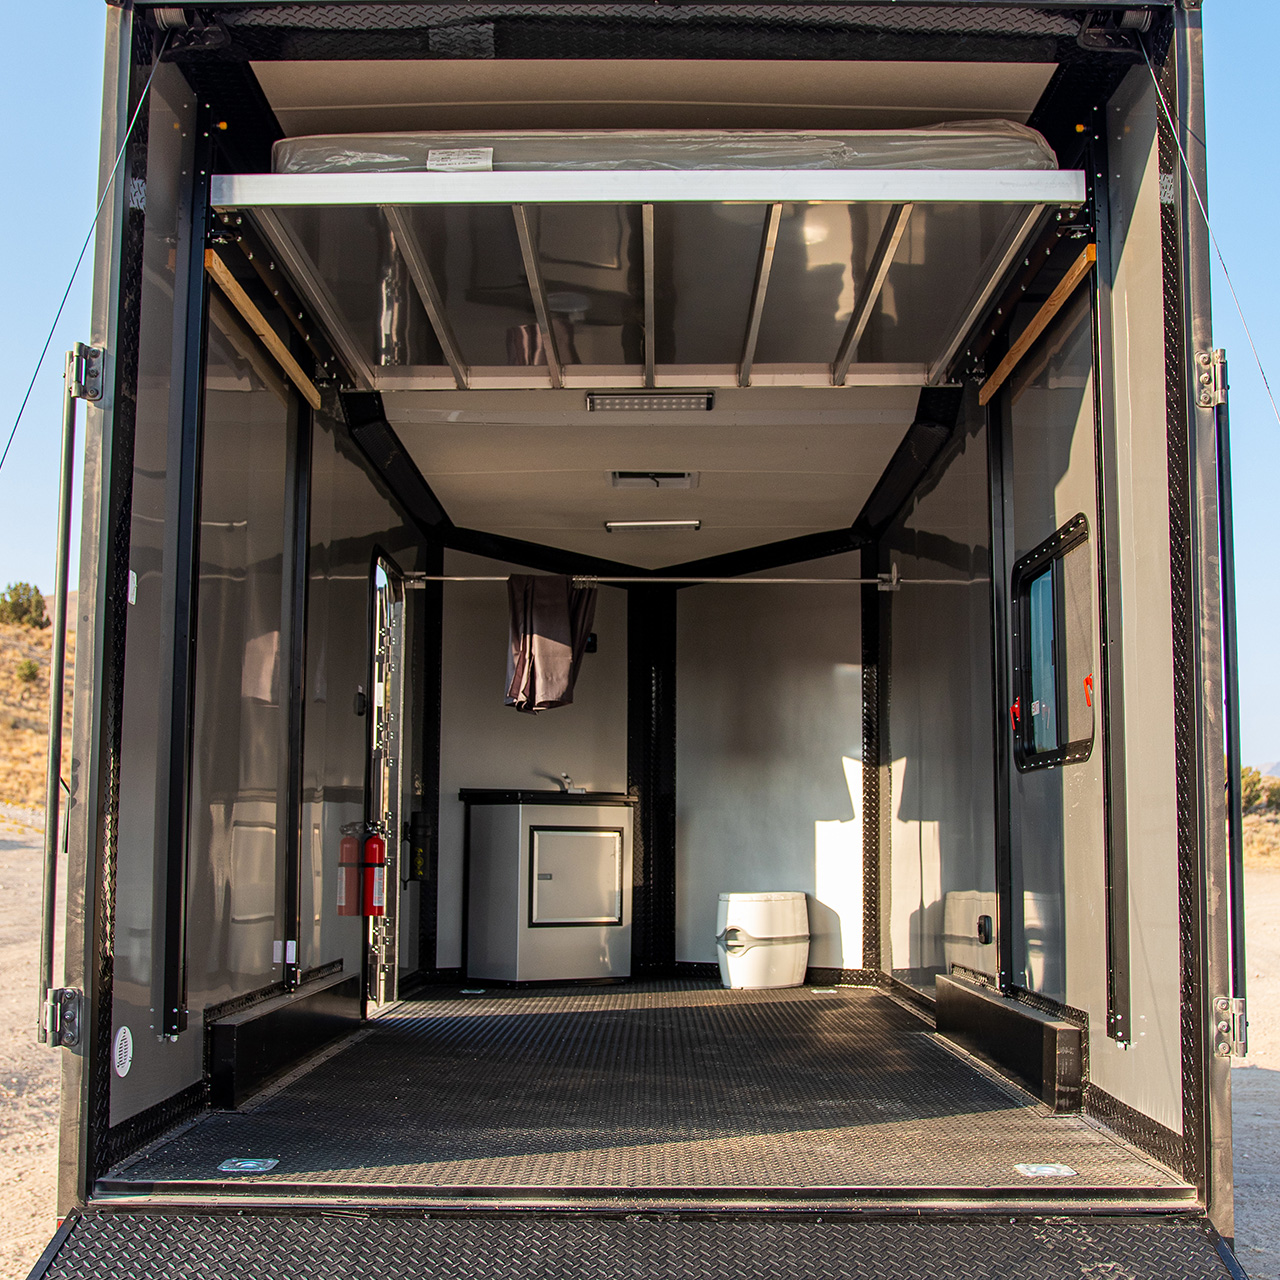 Our off-road trailers are constructed to provide an impressive amount of conveniences to your next excursion.